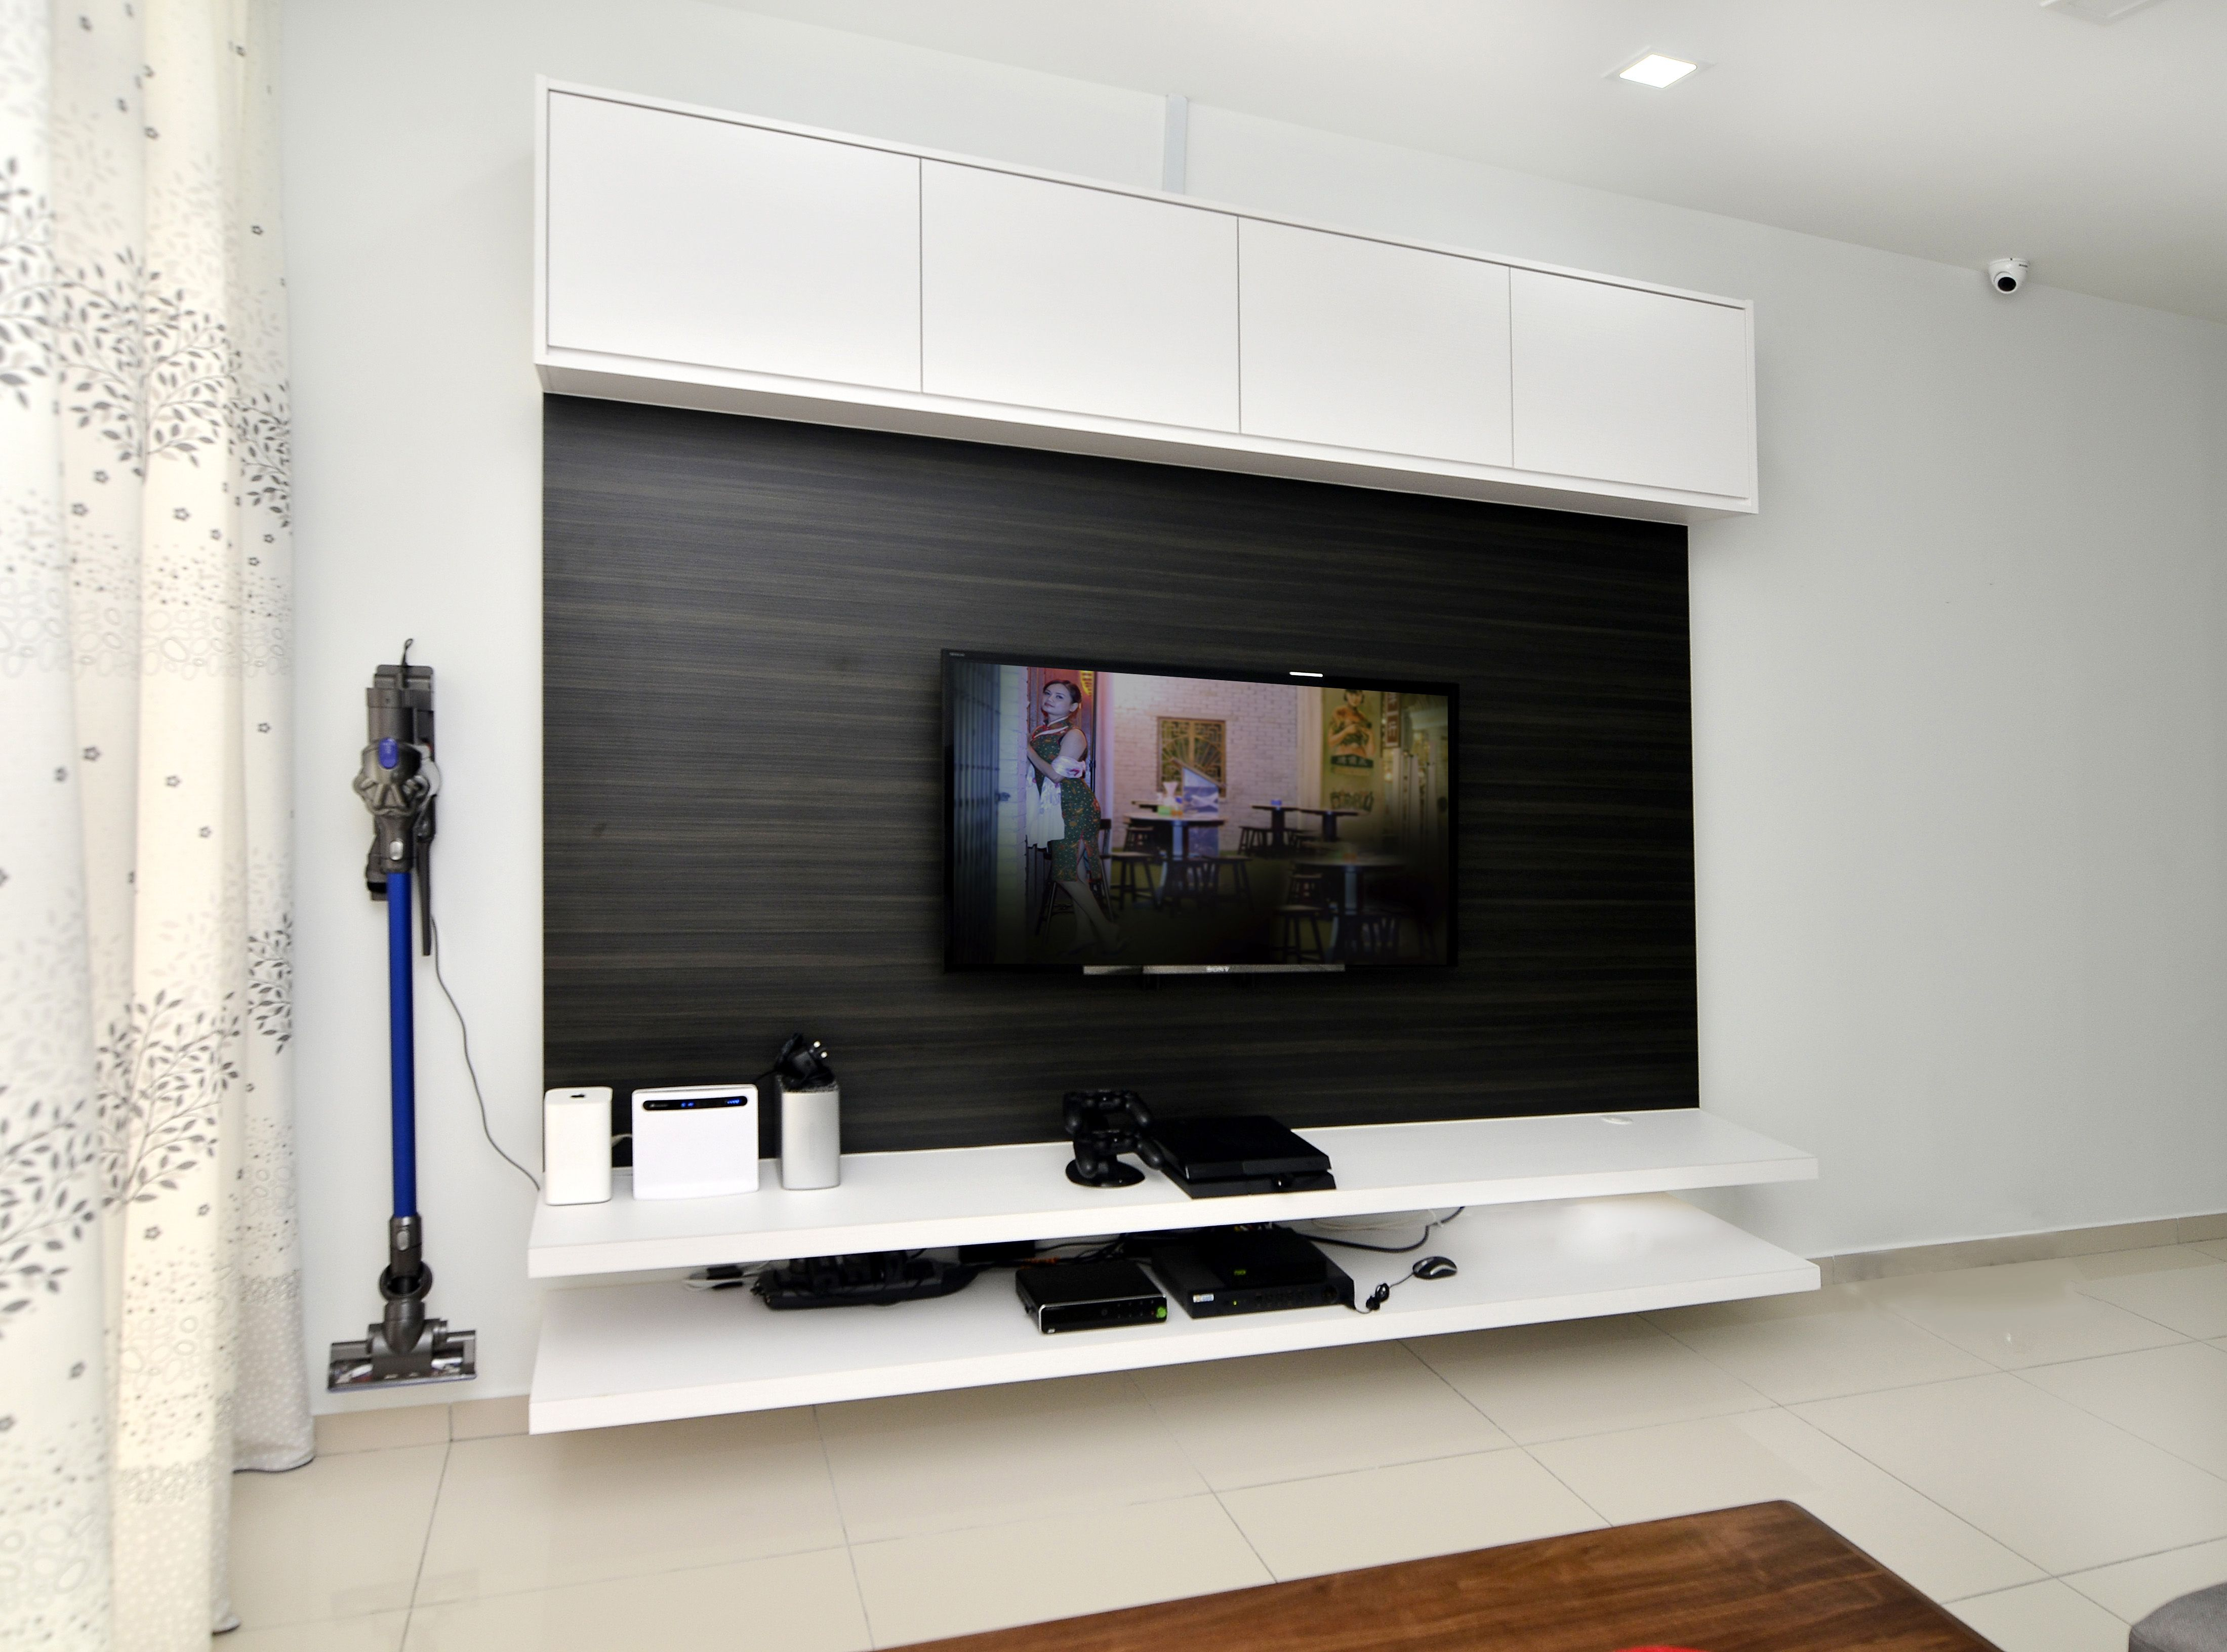 lcd console screen new cabinets gorgeous stands flat plasma tv of lovable amazing cabinet curved southwest ideas for